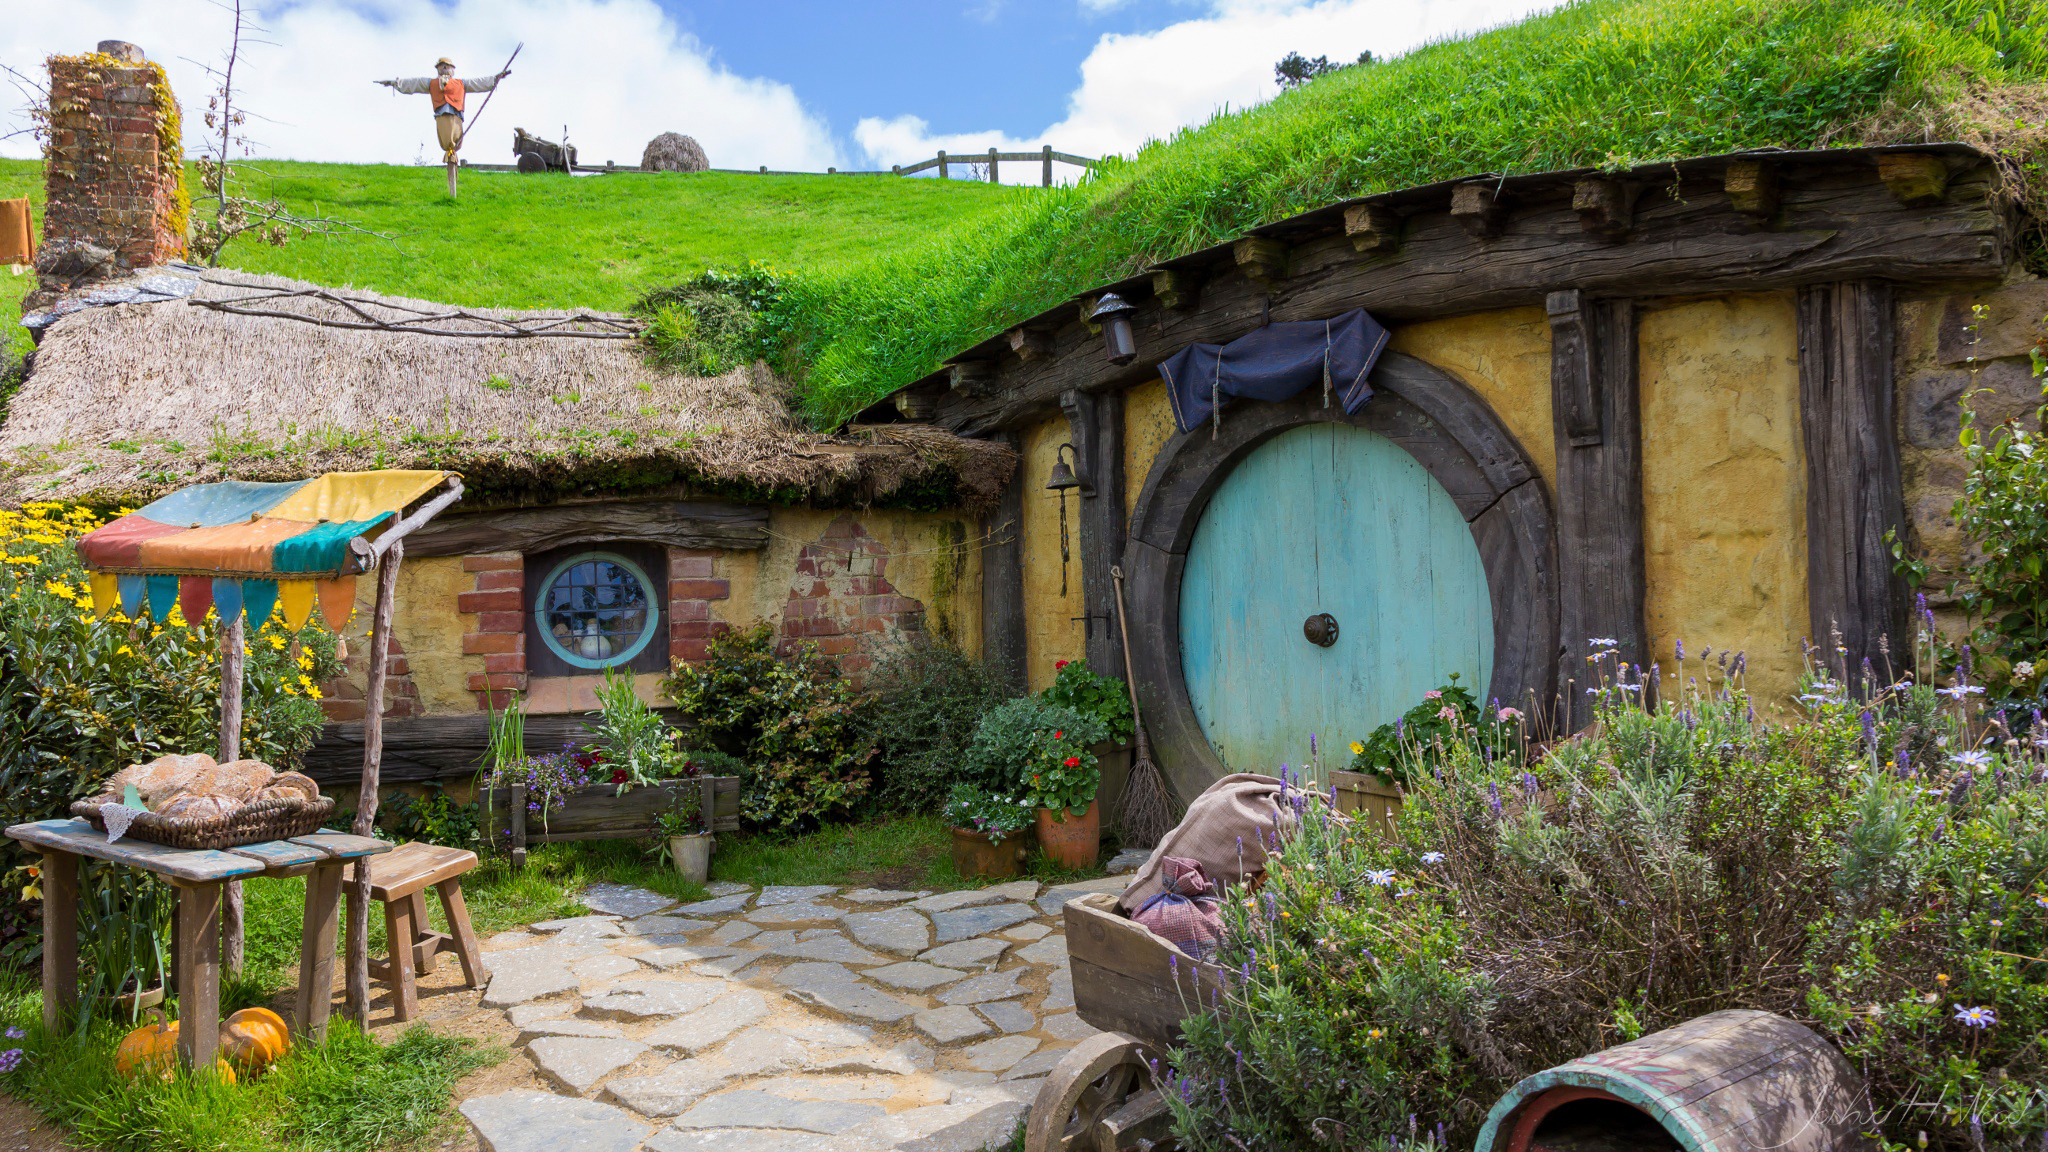 Wallpaper hobbit hole new zealand house wallpapers miscellanea 2048x1152